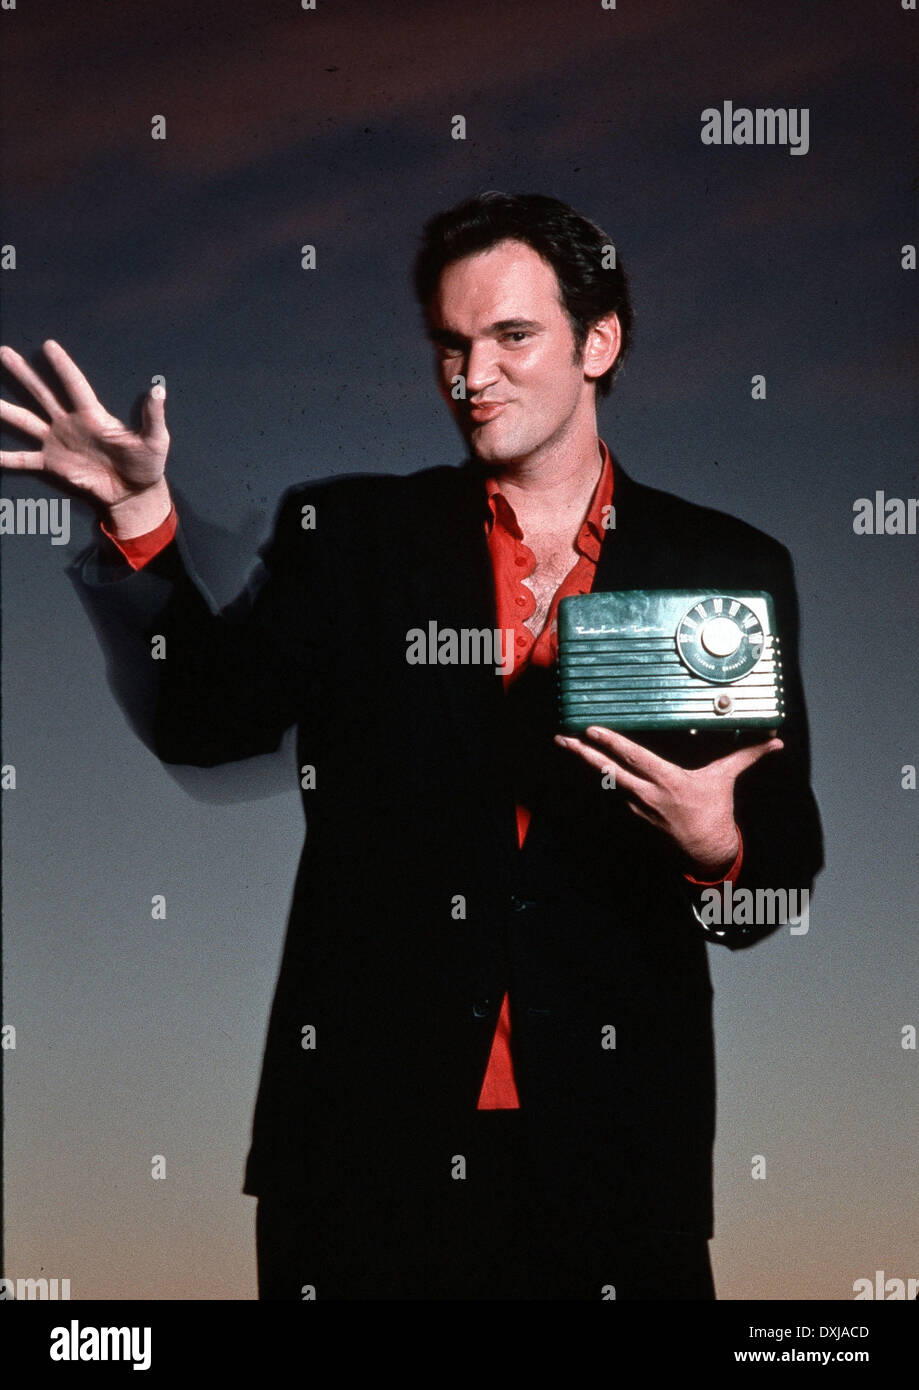 DESTINY TURNS ON THE RADIO (US1995) QUENTIN TARANTINO AS JOH - Stock Image